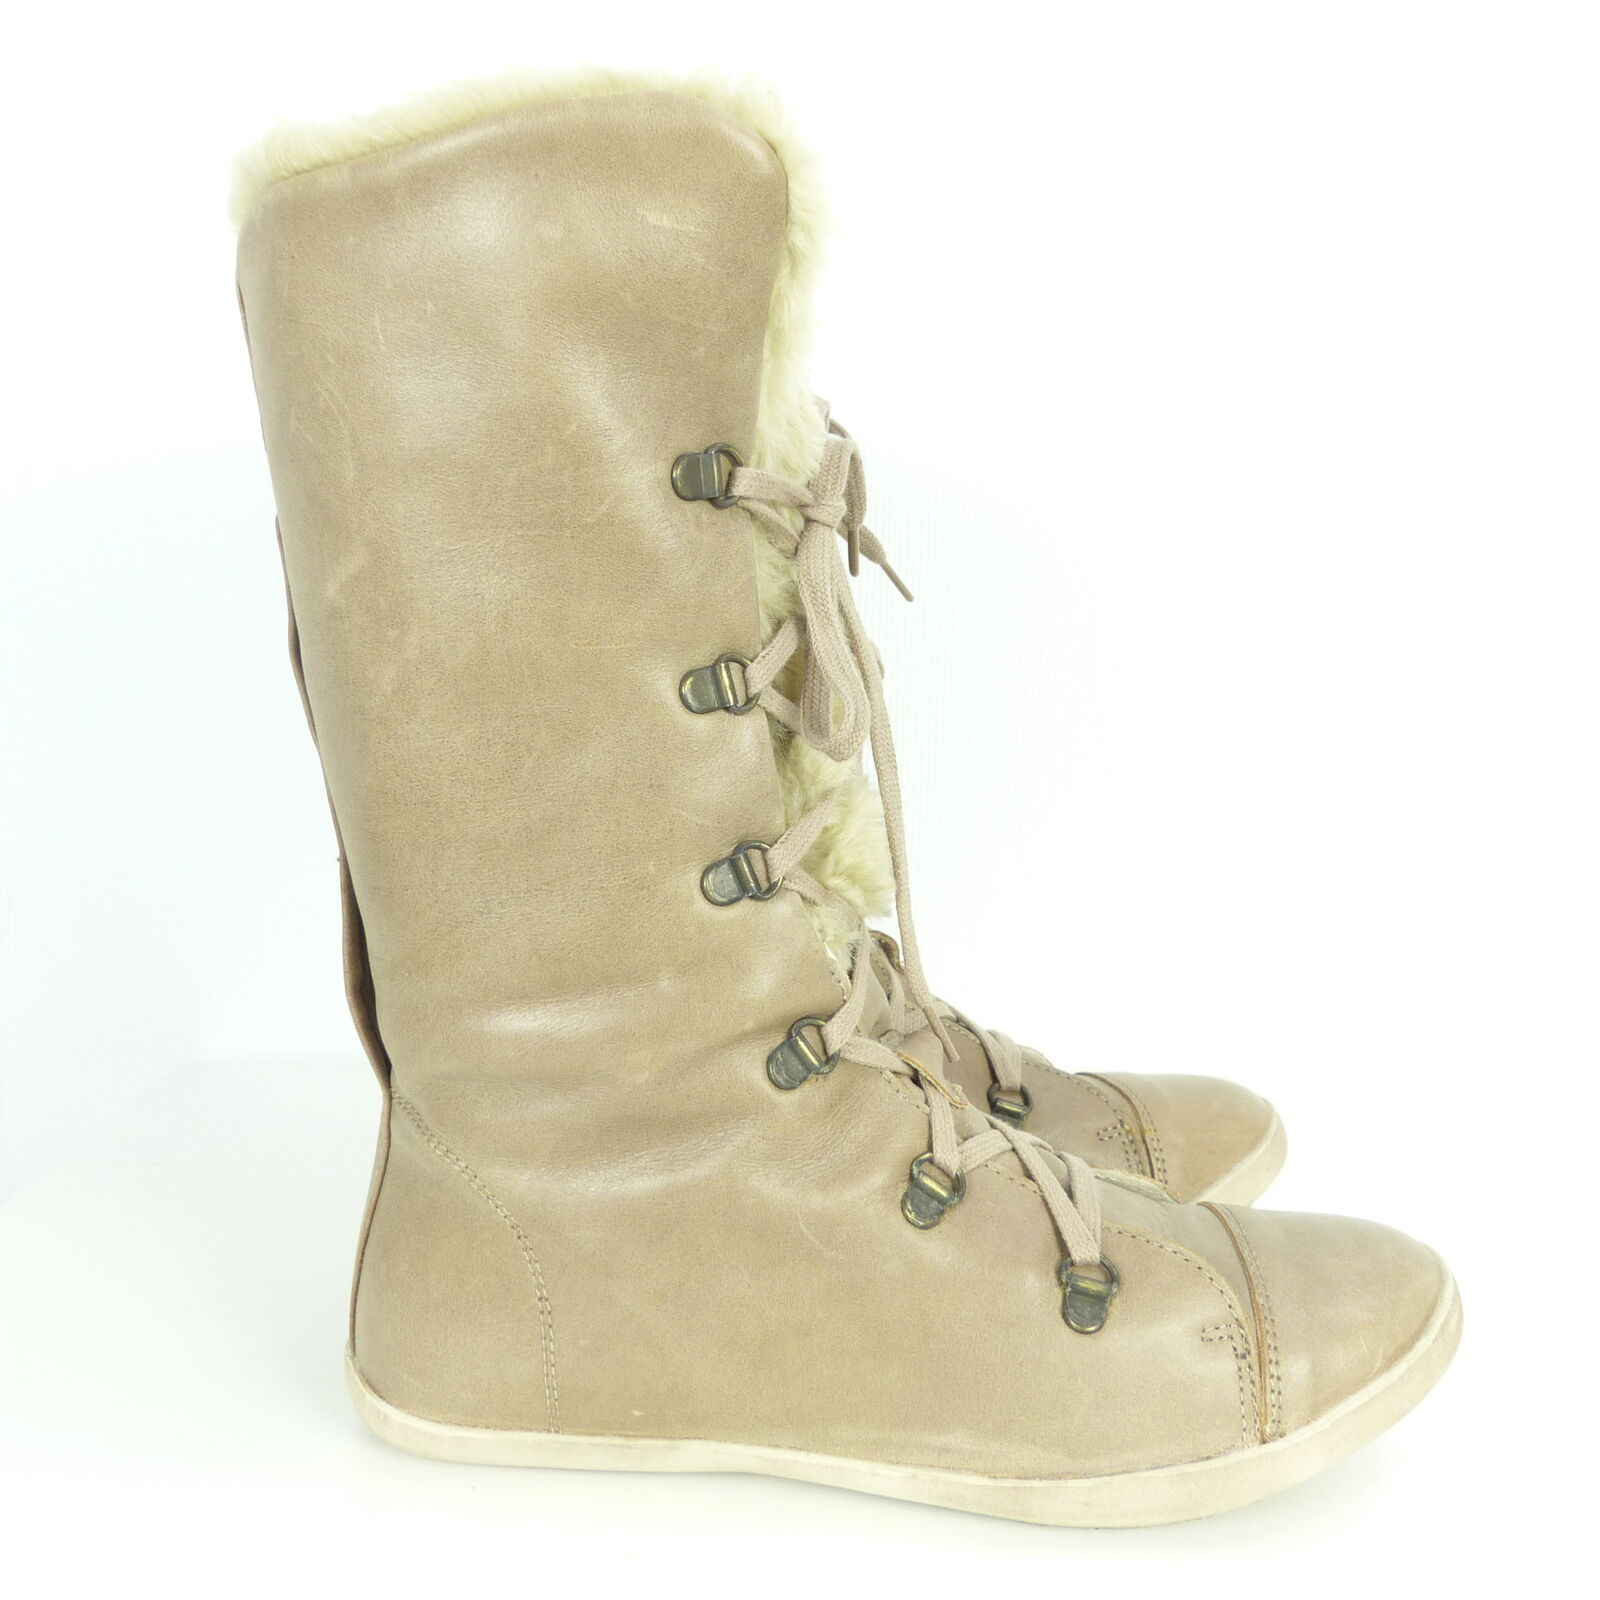 ONE OF A KIND Stiefeletten Boots Winter Kunstfell Impressionen Gr. Gr. Gr. EUR 39 e2df47